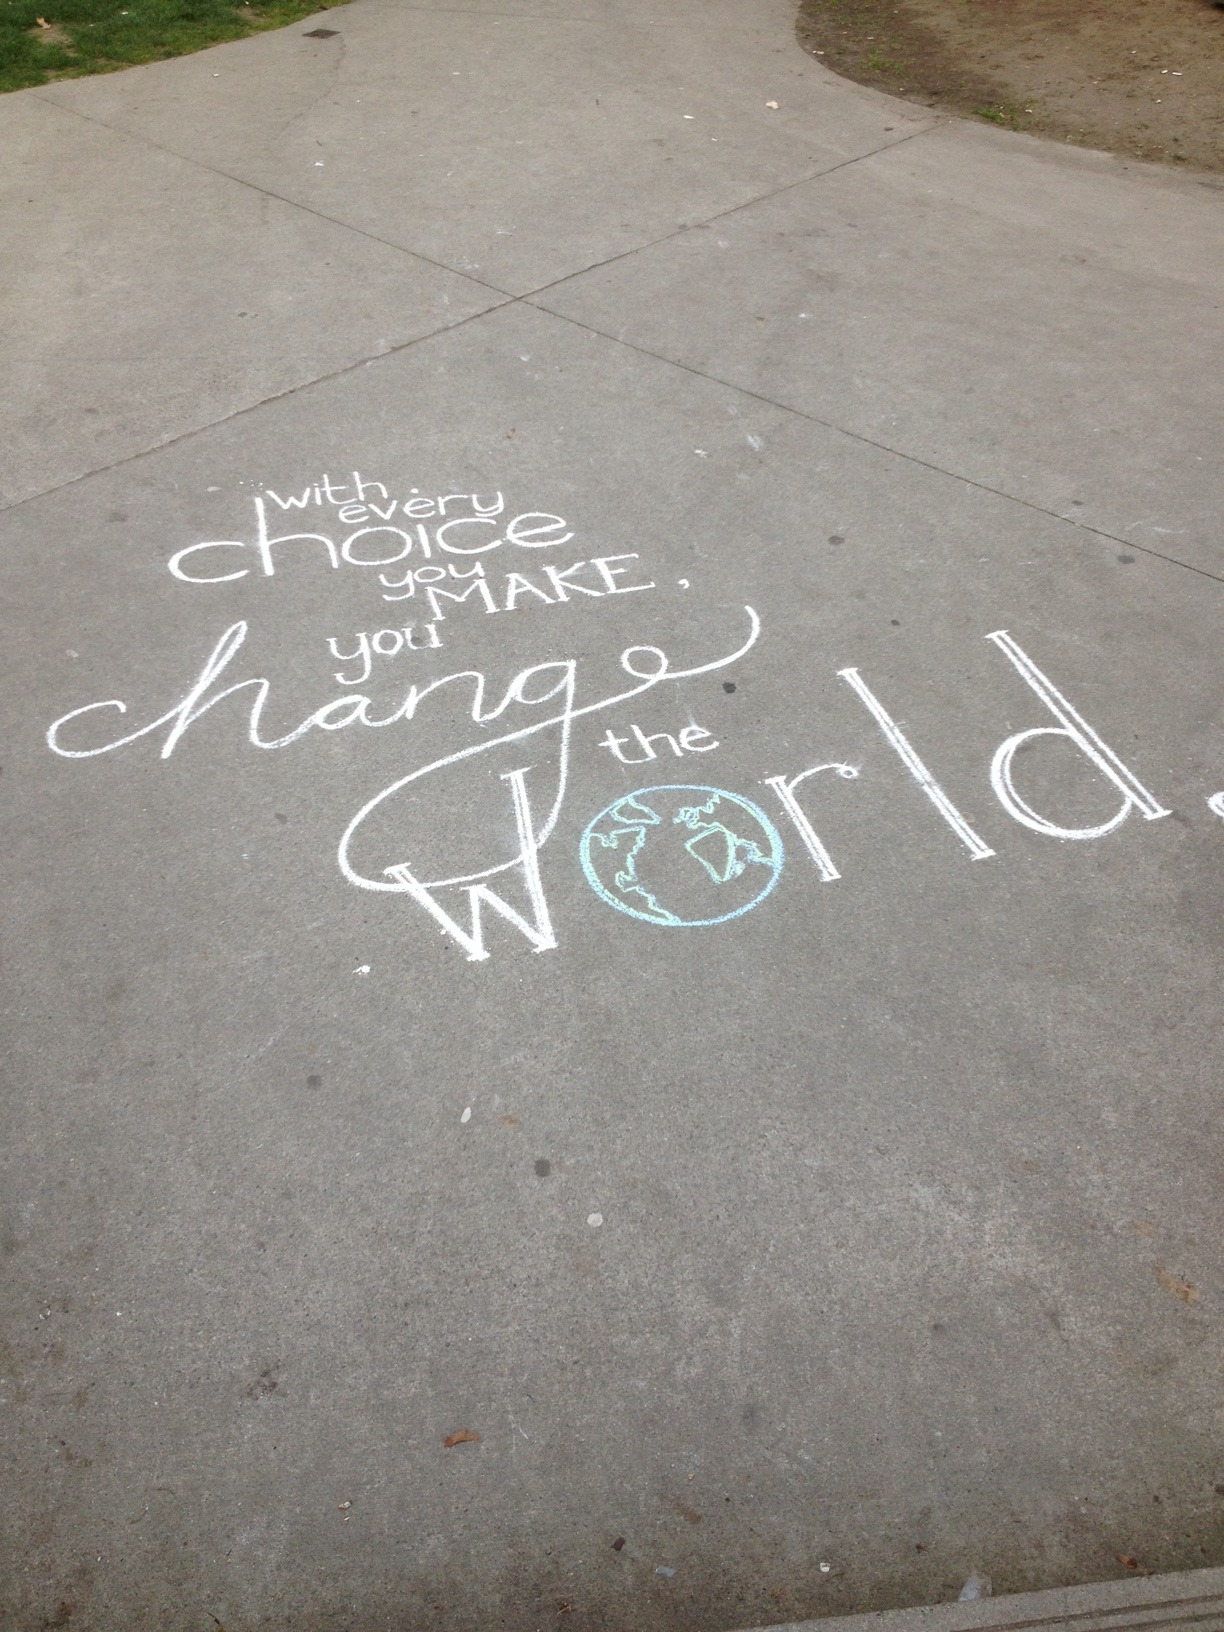 Chalked outside our office the other day